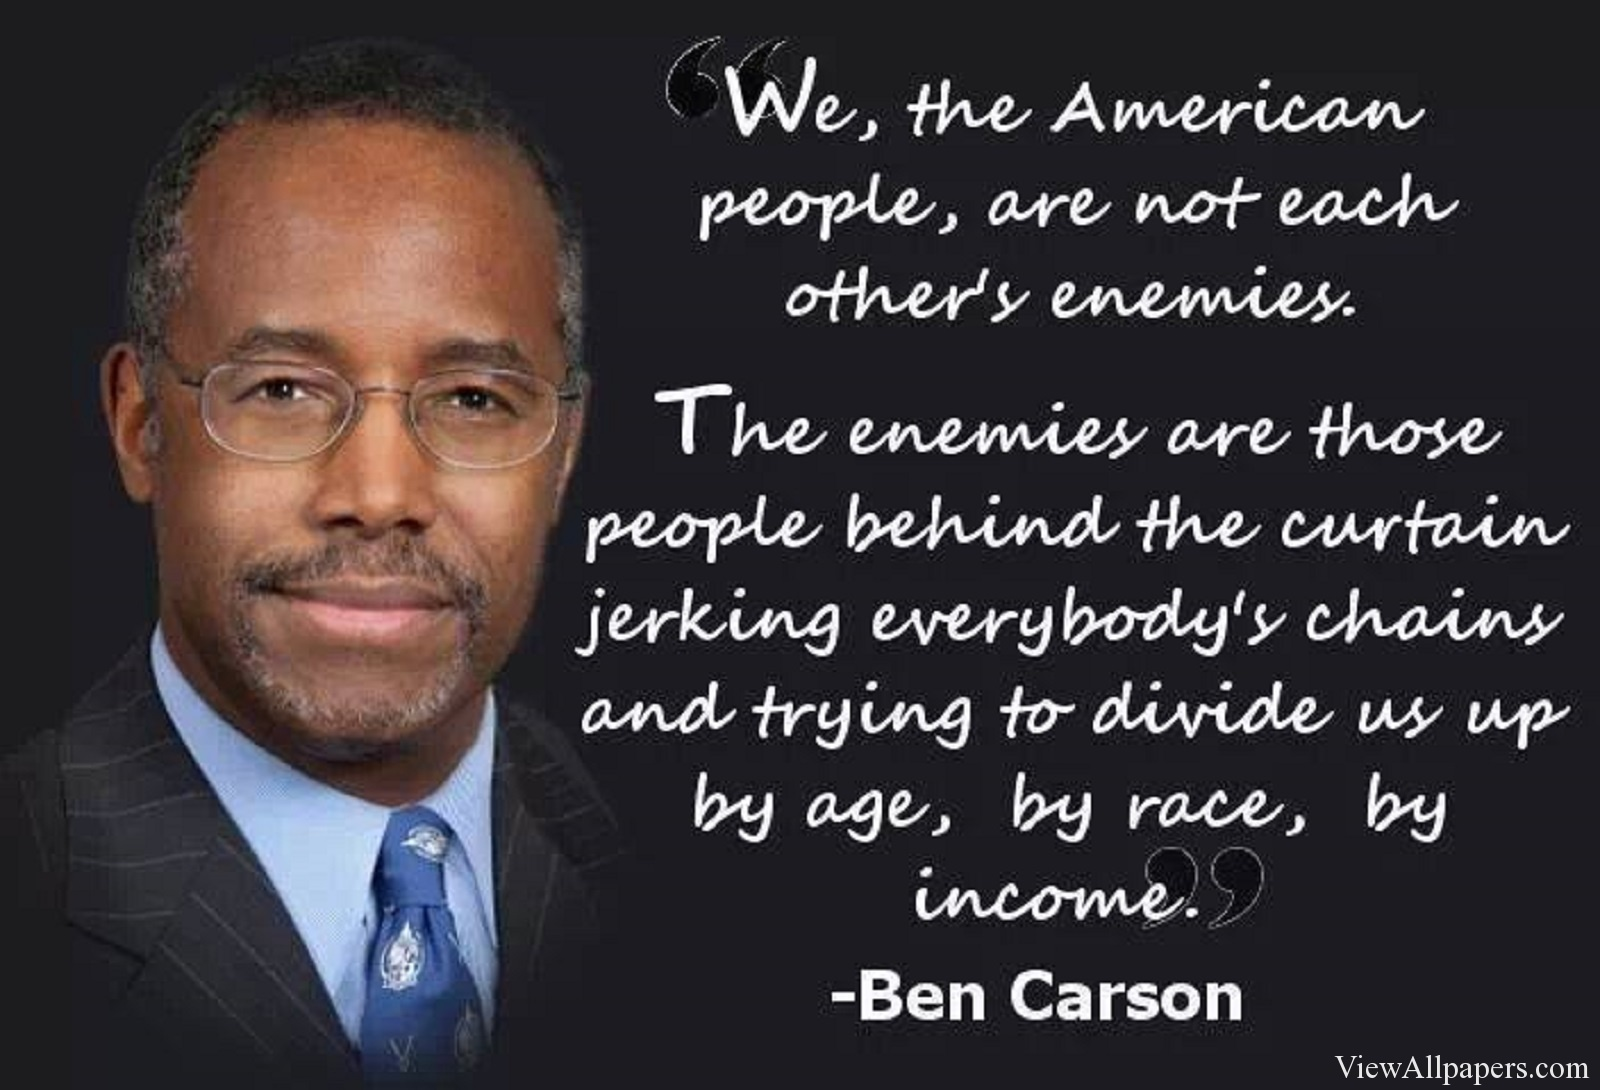 an argument that dr ben carson optimizes the american dream But paleos, who'd never dream of blaming putin for chechnya if chairman ben were a friend of the american people, rather than pal (and chief counterfeiter) to.